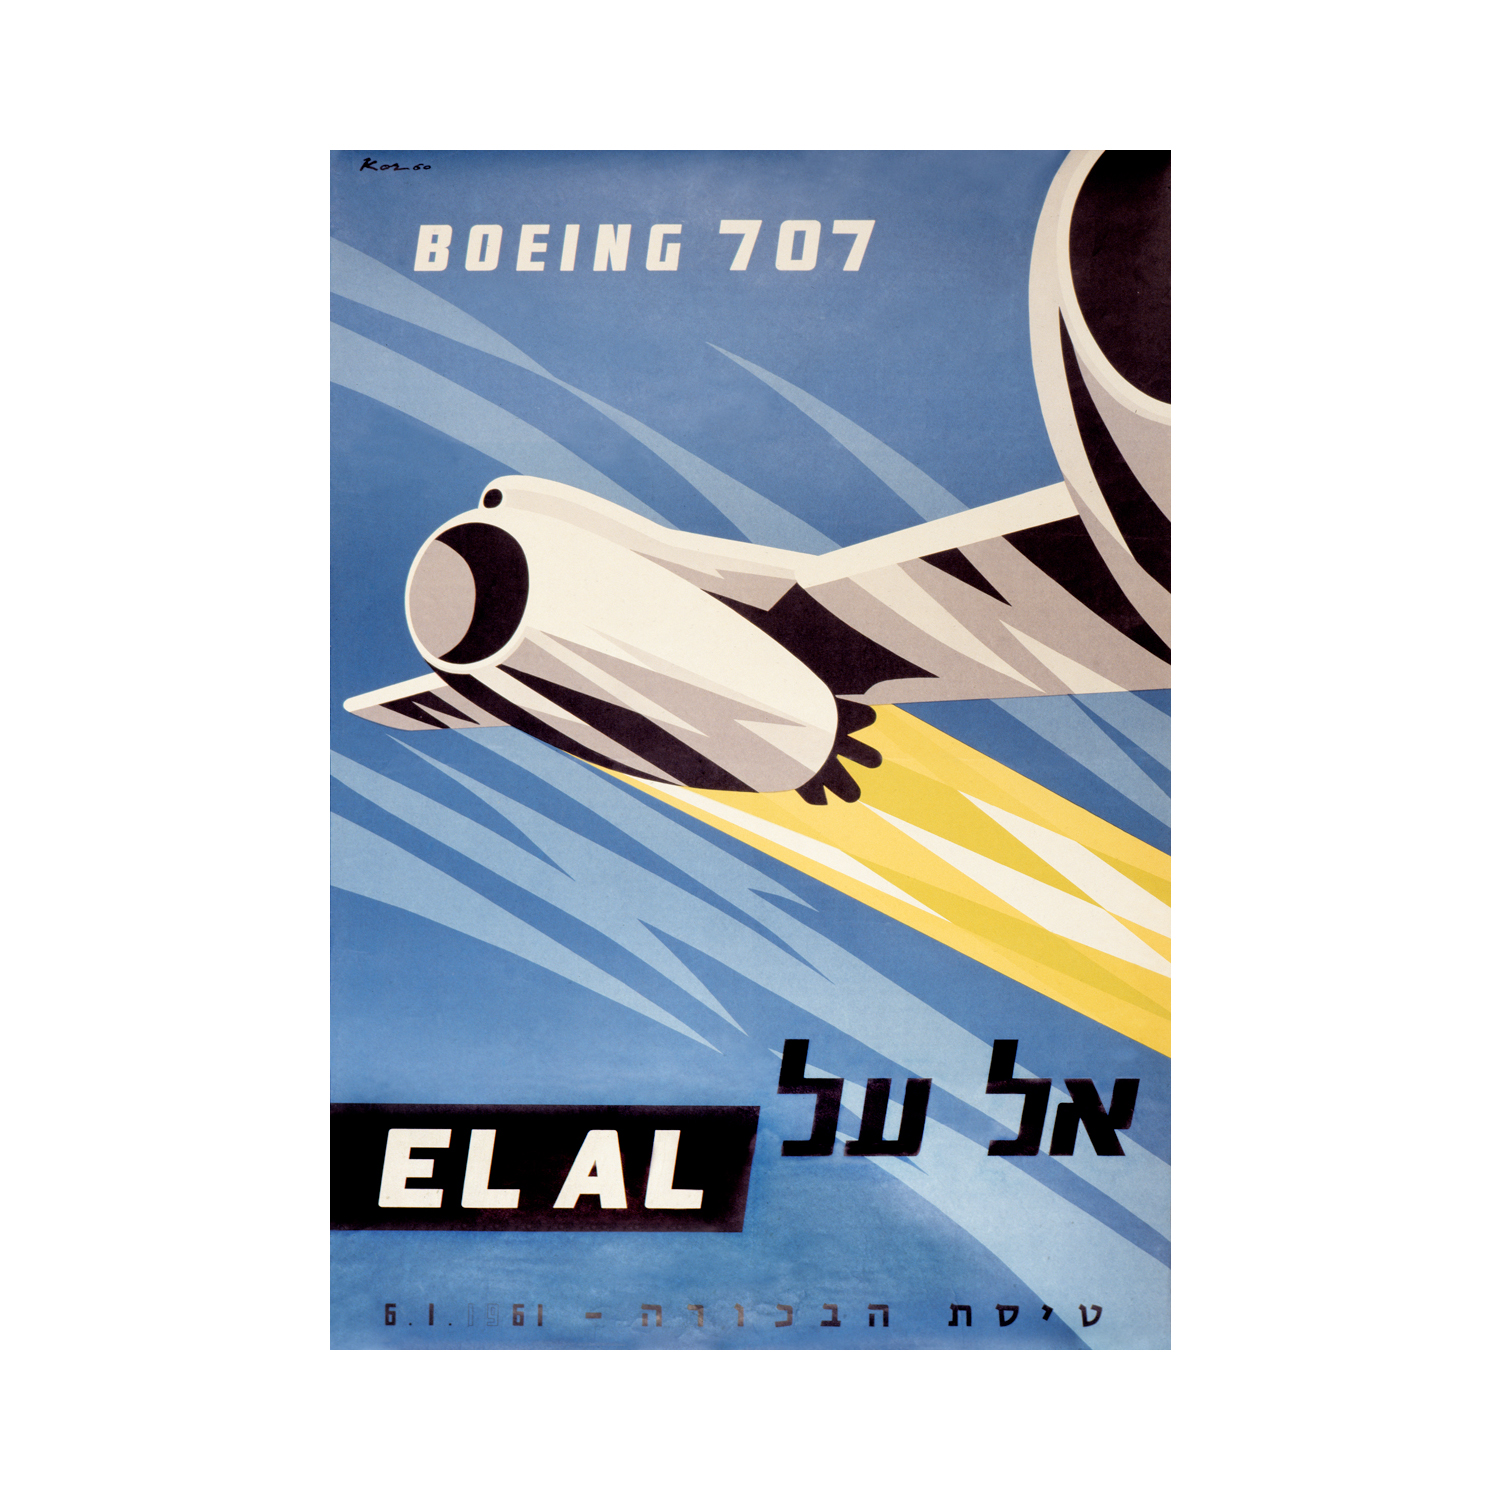 El-Al Airlines Introduces the Boeing 707 Aircraft – 1961